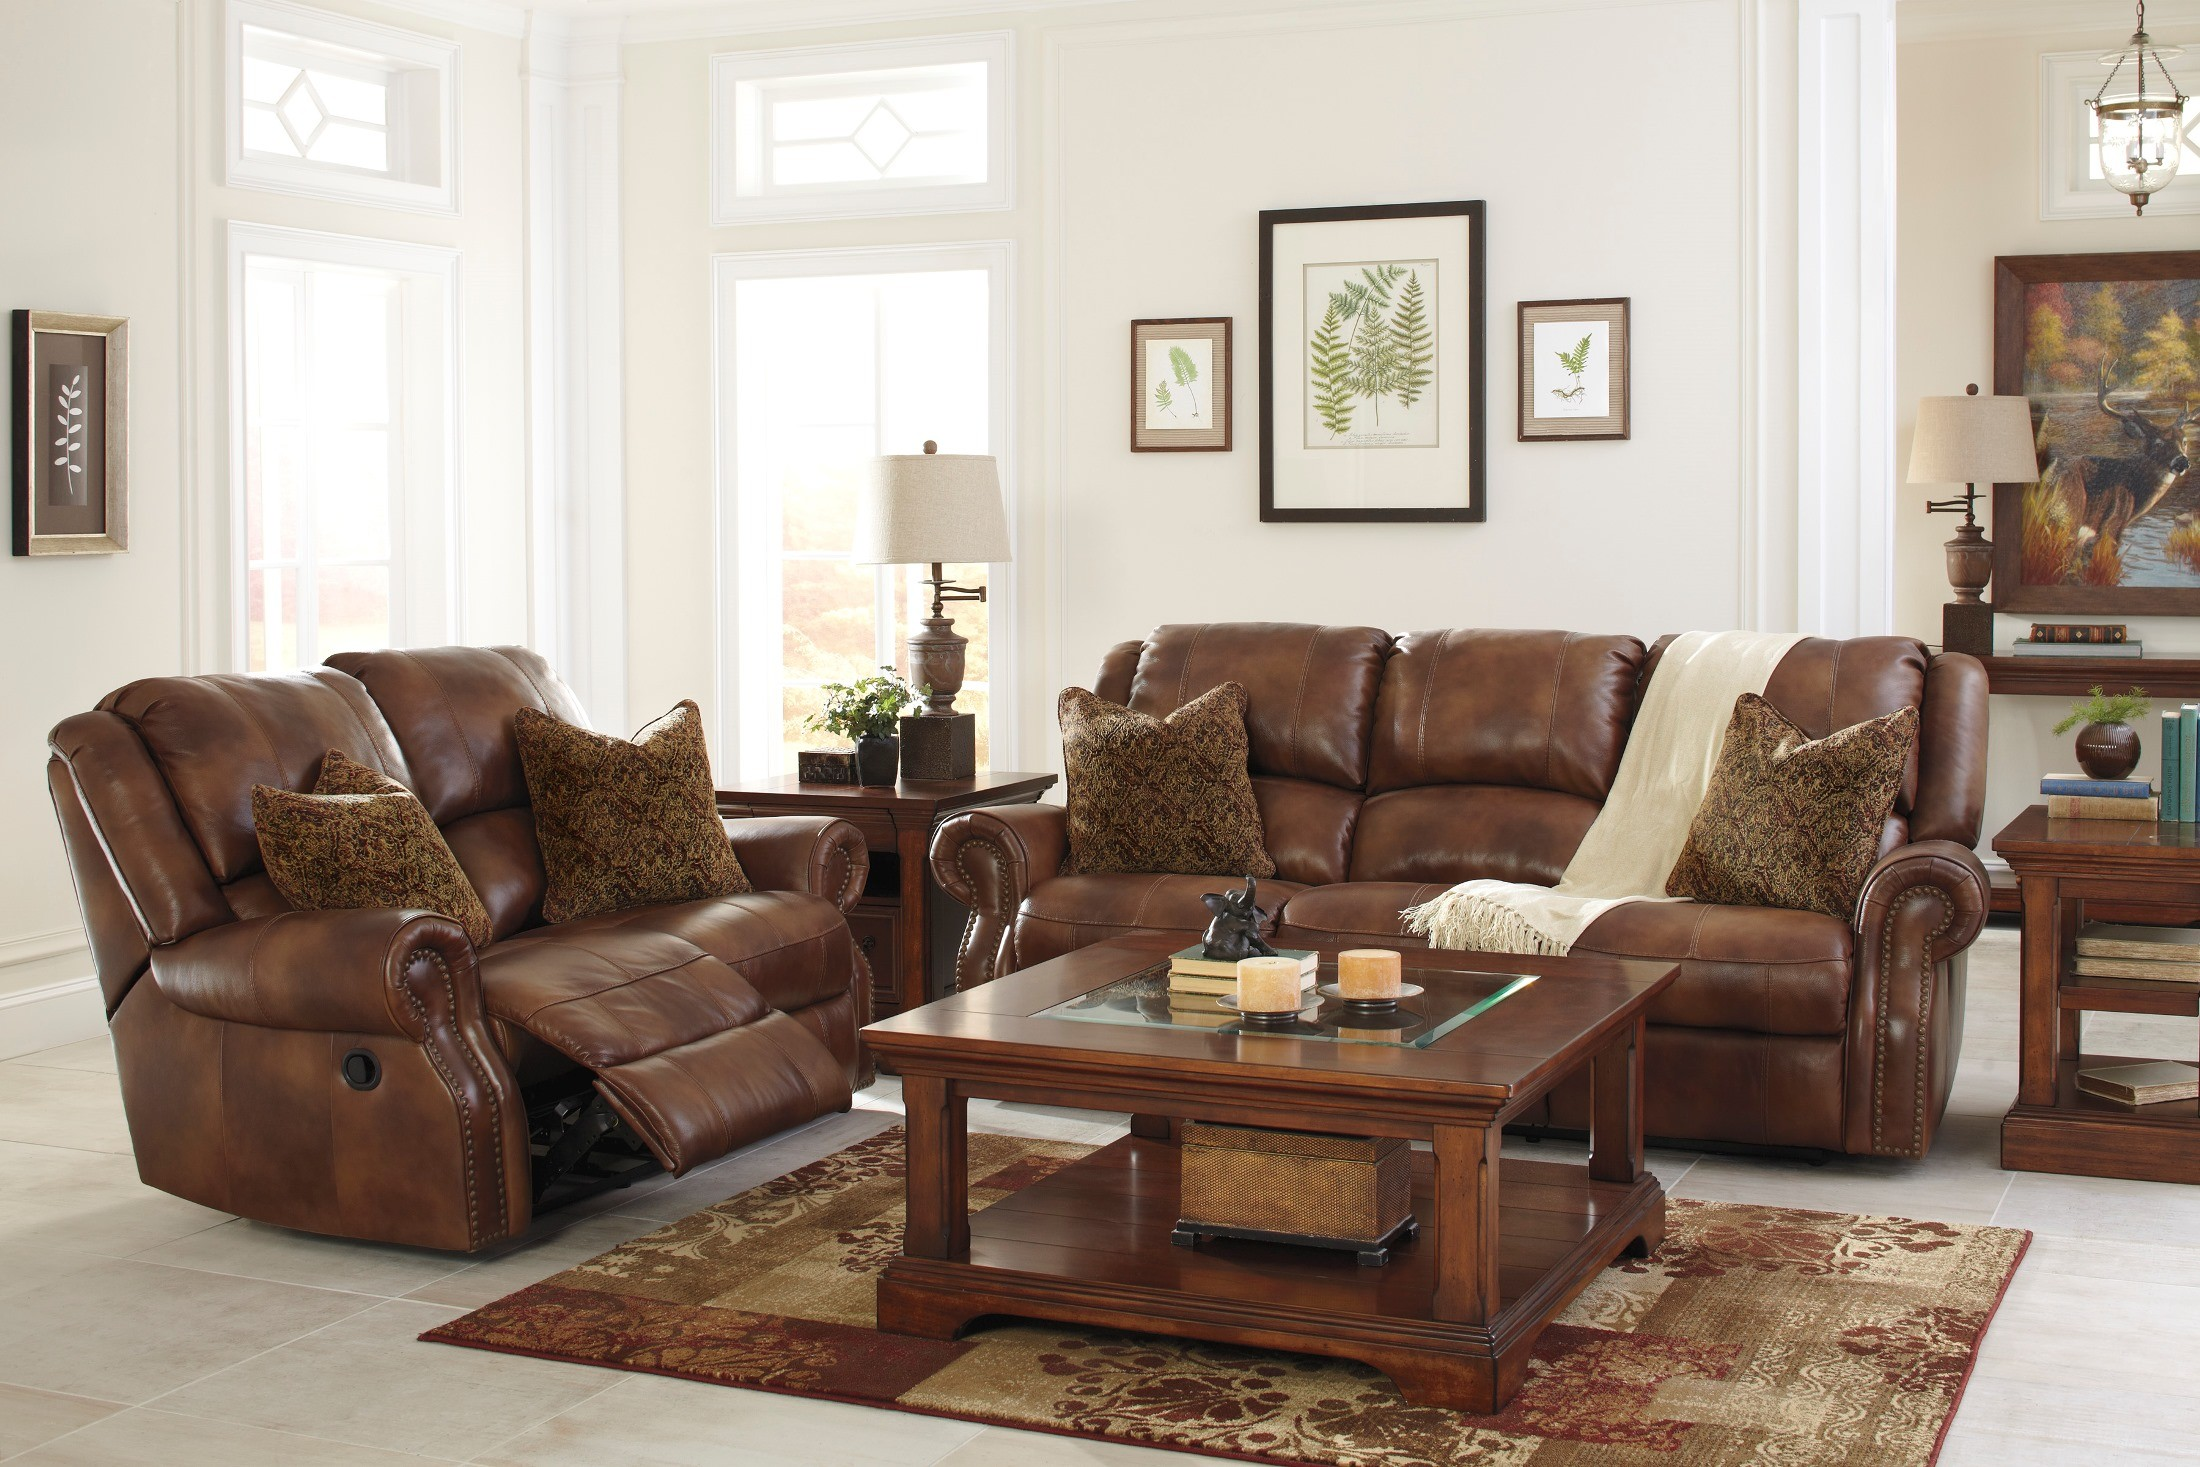 Walworth auburn power reclining living room set from for Living room chair set